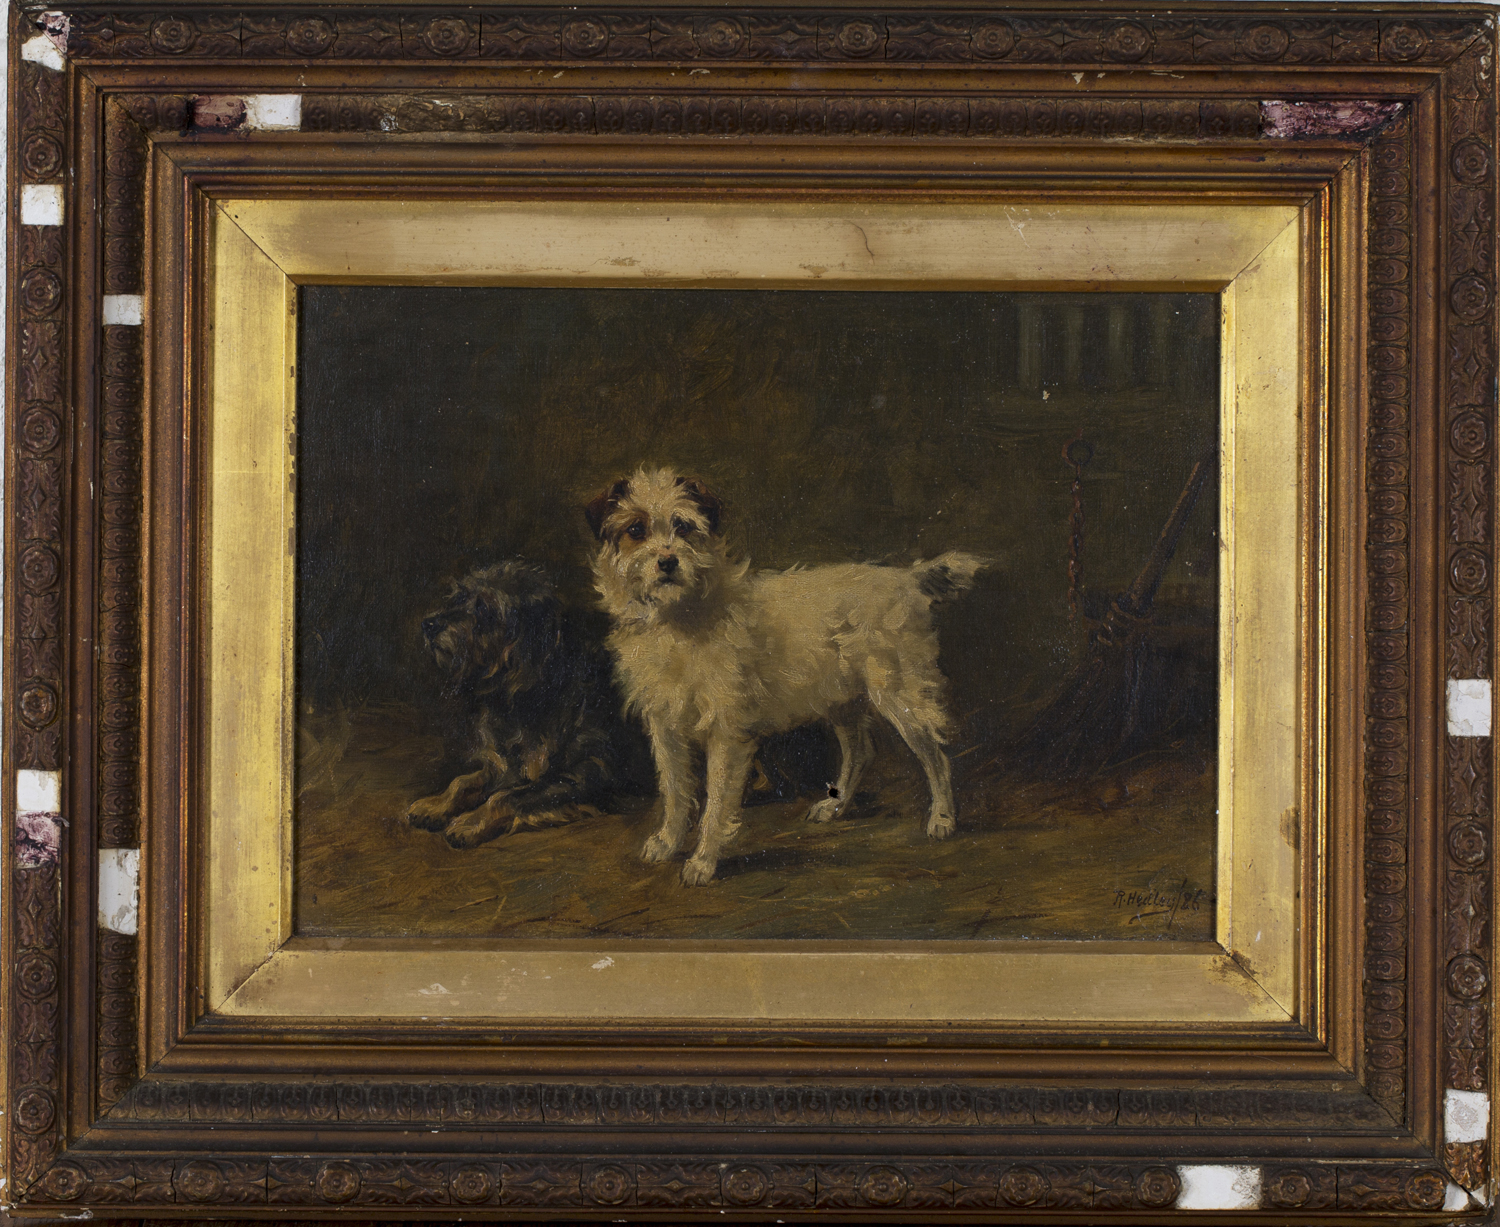 Lot 41 - Ralph Hedley - Two Terriers in a Stable Interior, 19th century oil on canvas, signed and dated '